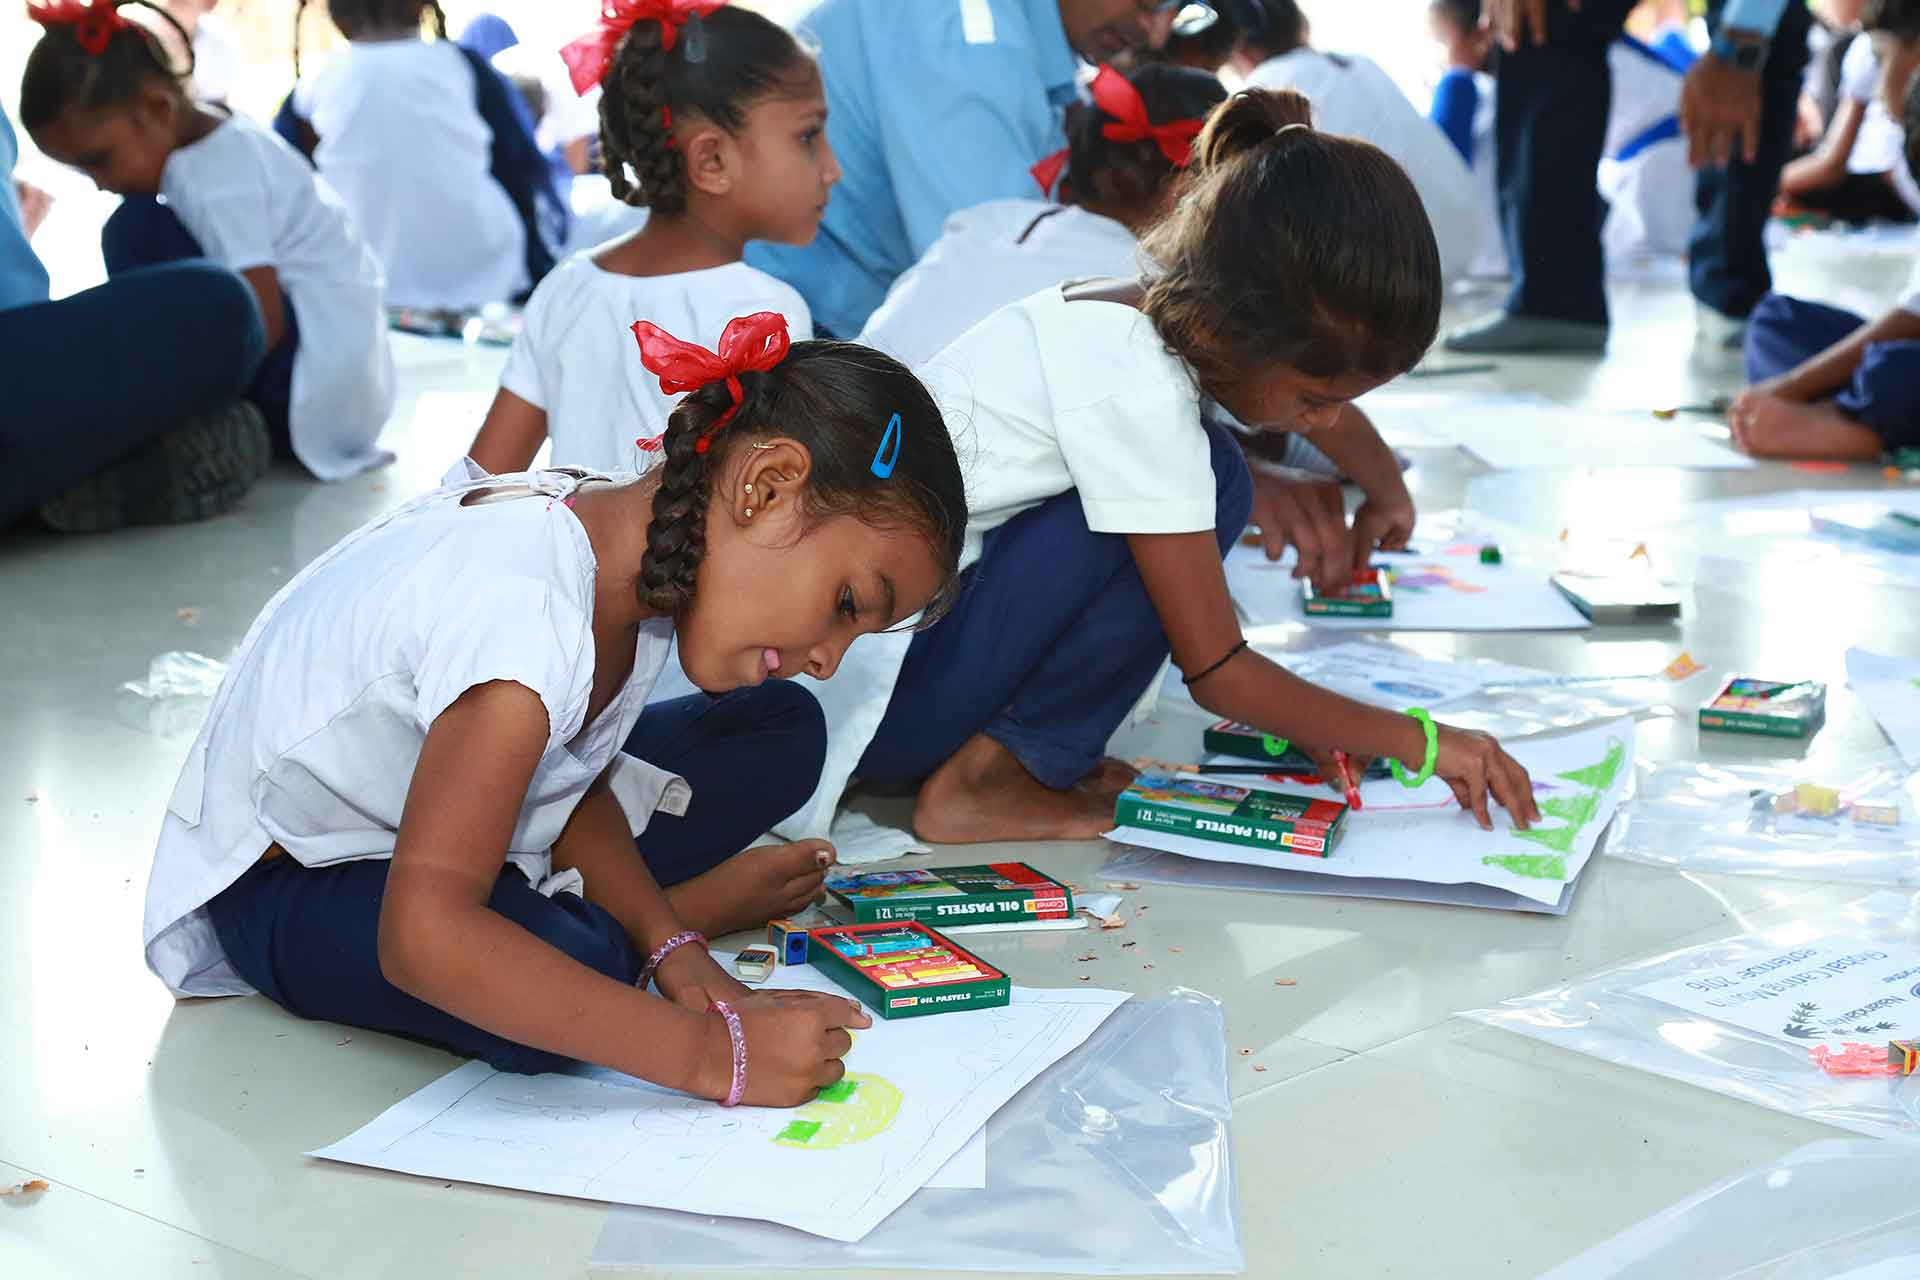 Ford Imparts Holistic Education With Happy Schools Initiative In India